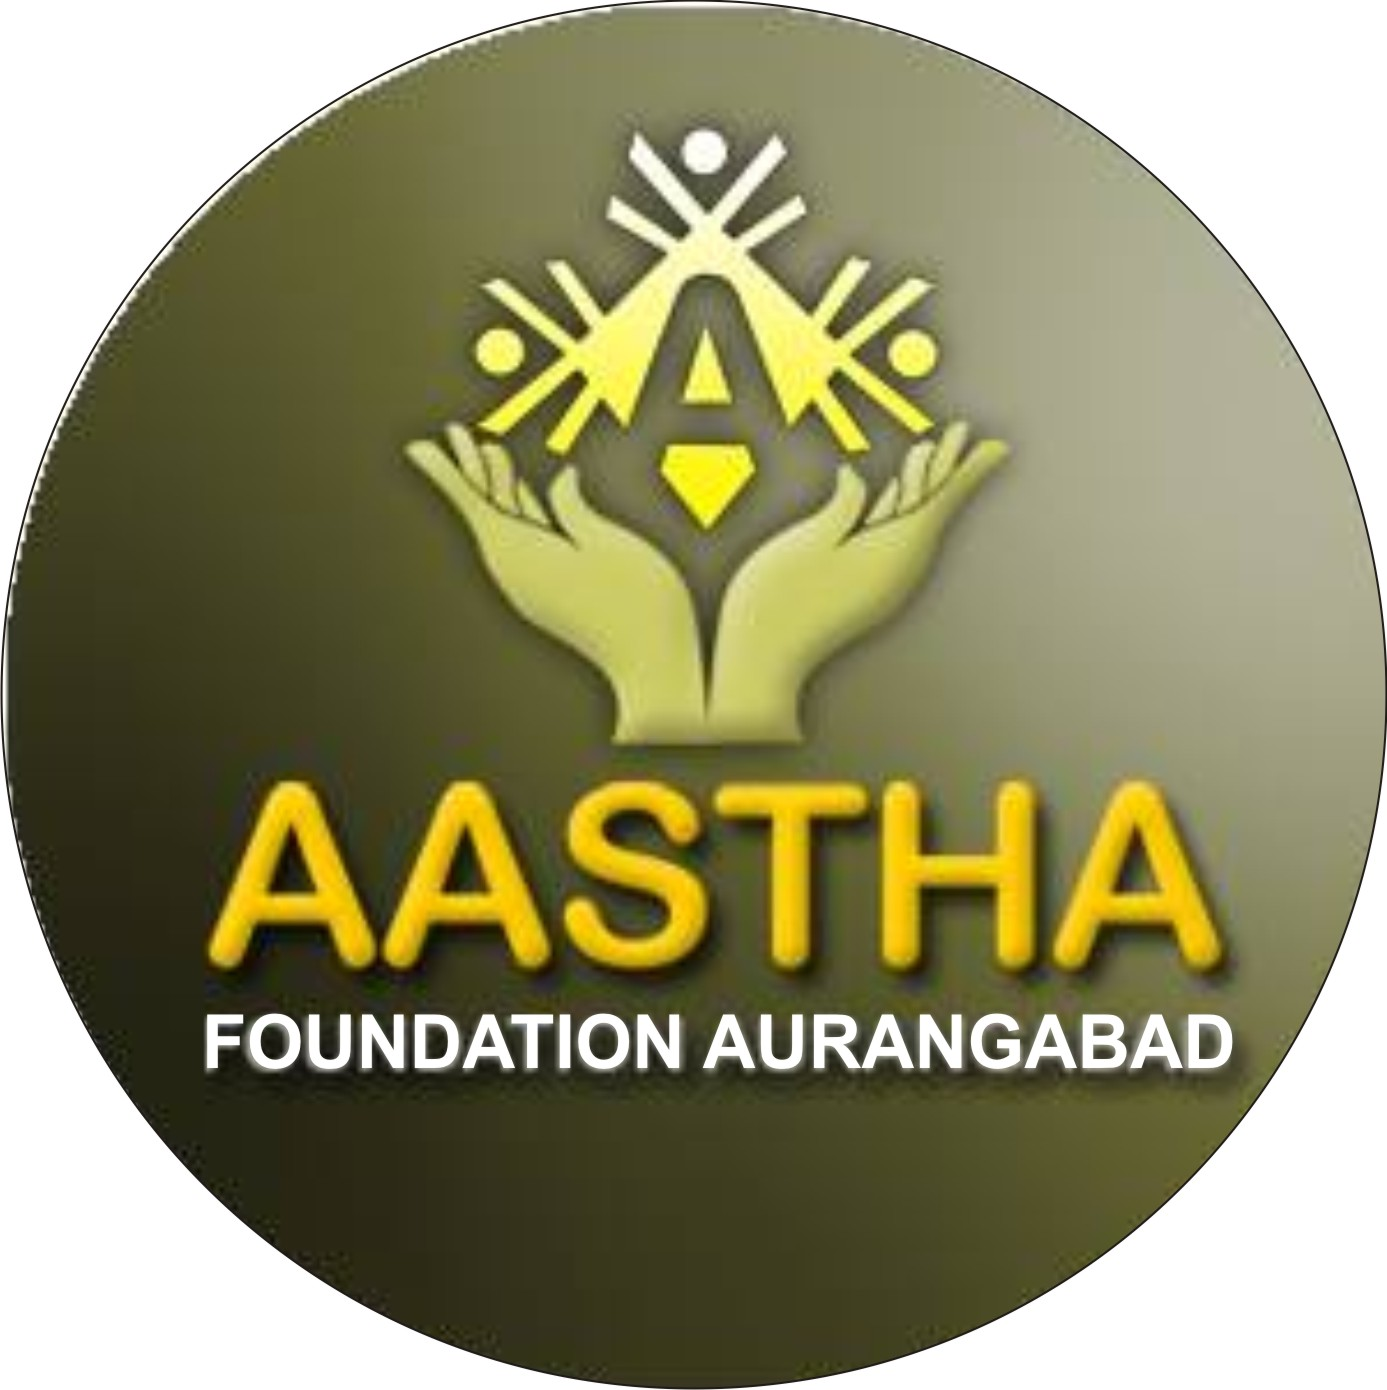 Aastha Foundation Aurangabad